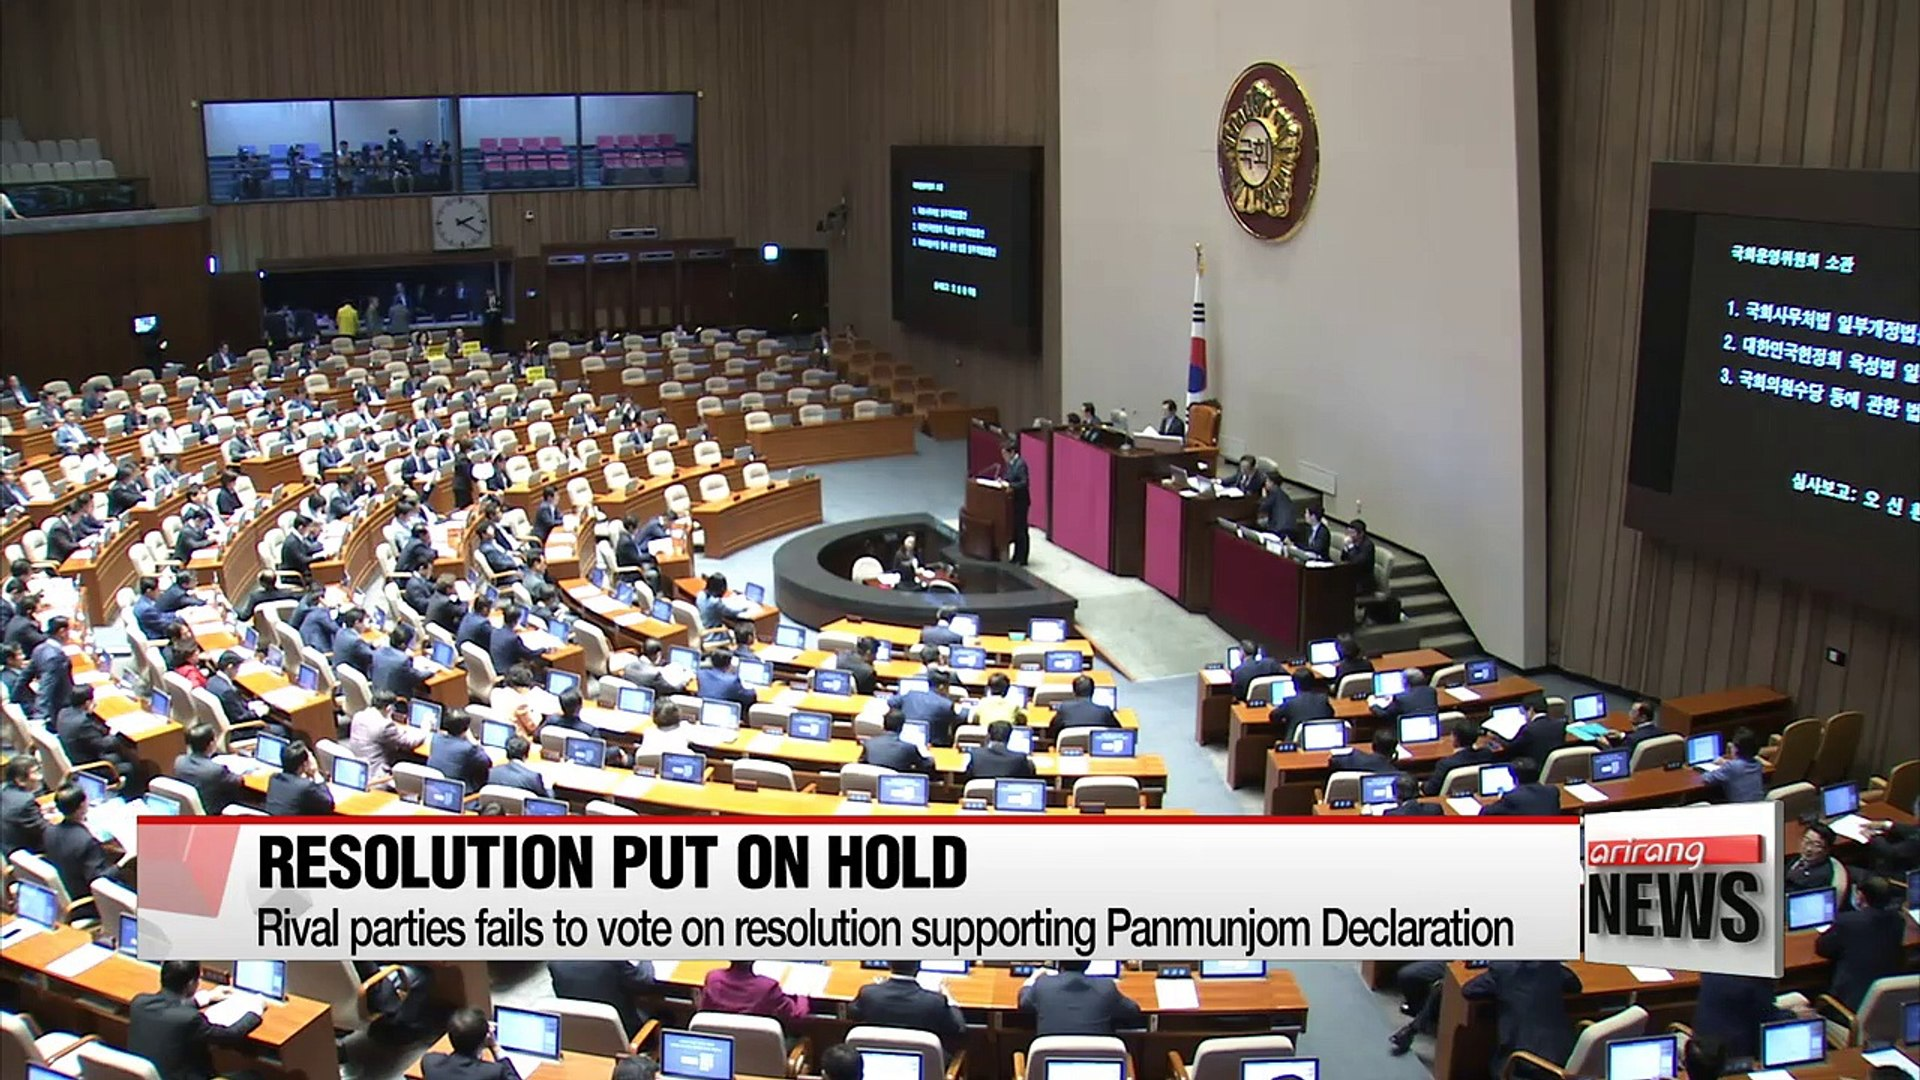 National ****embly passes revised minimum wage bill; Resolution supporting Panmunjom Declaration put